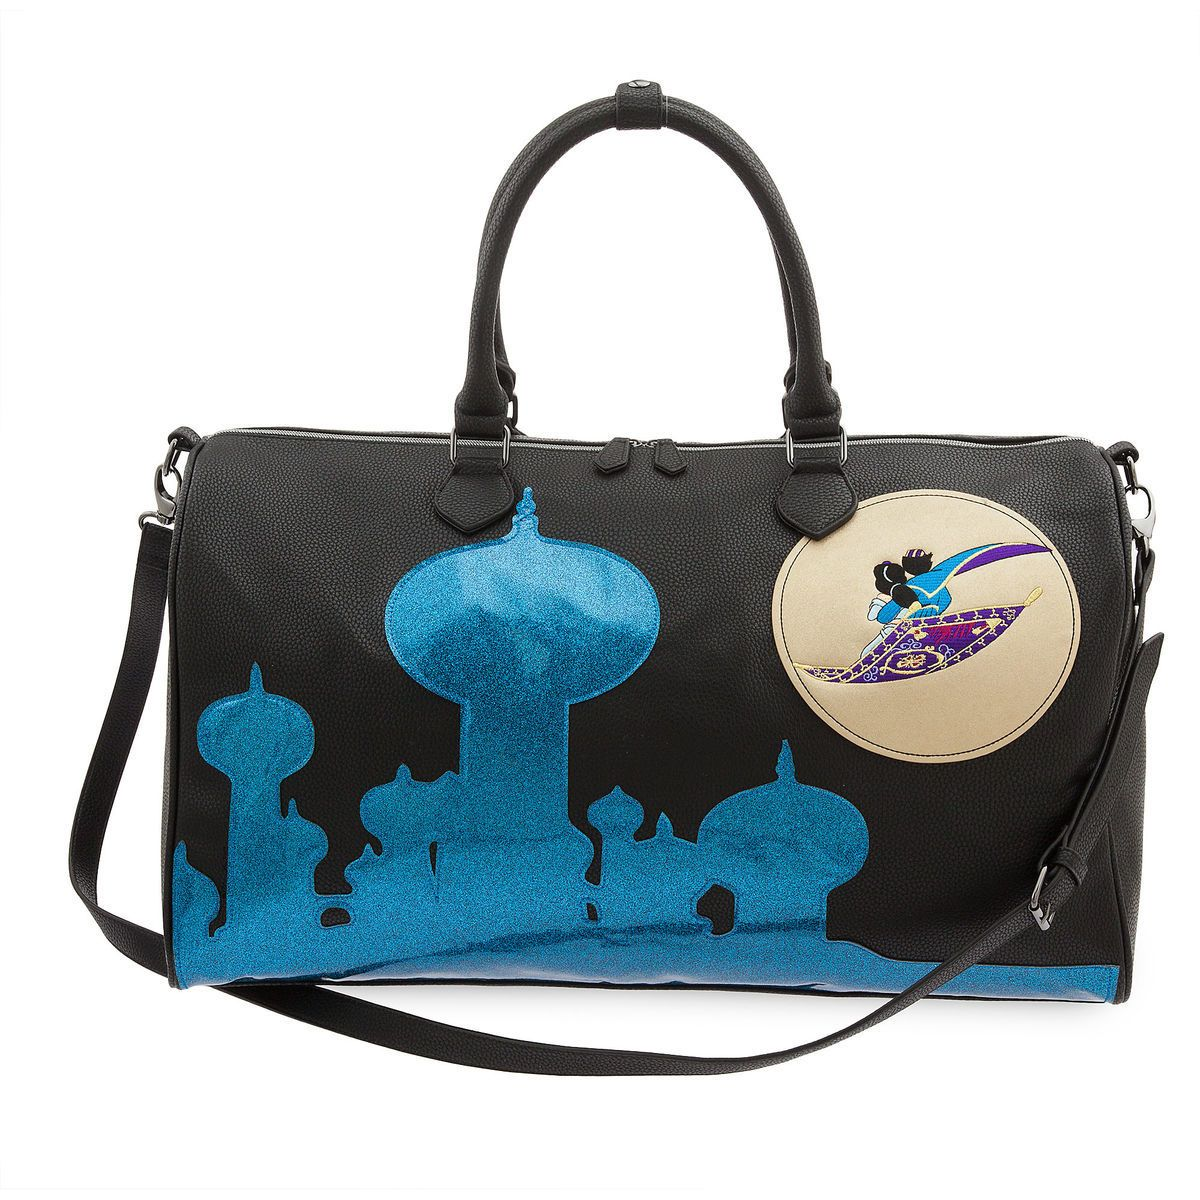 Jasmine and Aladdin Travel Bag for Adults by Danielle Nicole in 2019 ... 14b38b09e55